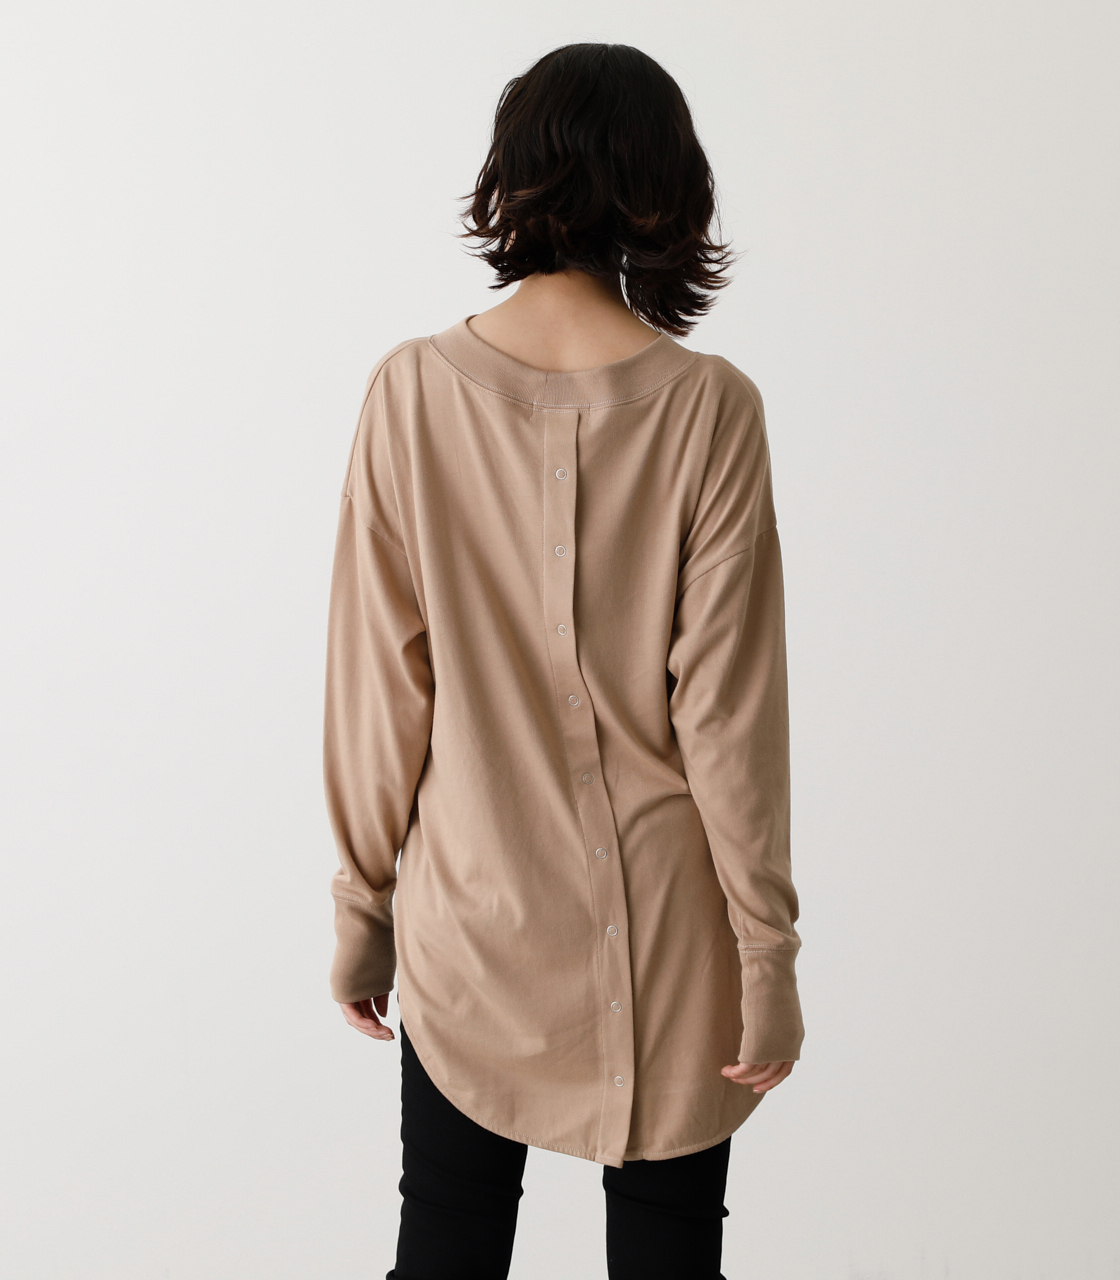 BACK BUTTON LONG T/バックボタンロングTシャツ 詳細画像 BEG 6